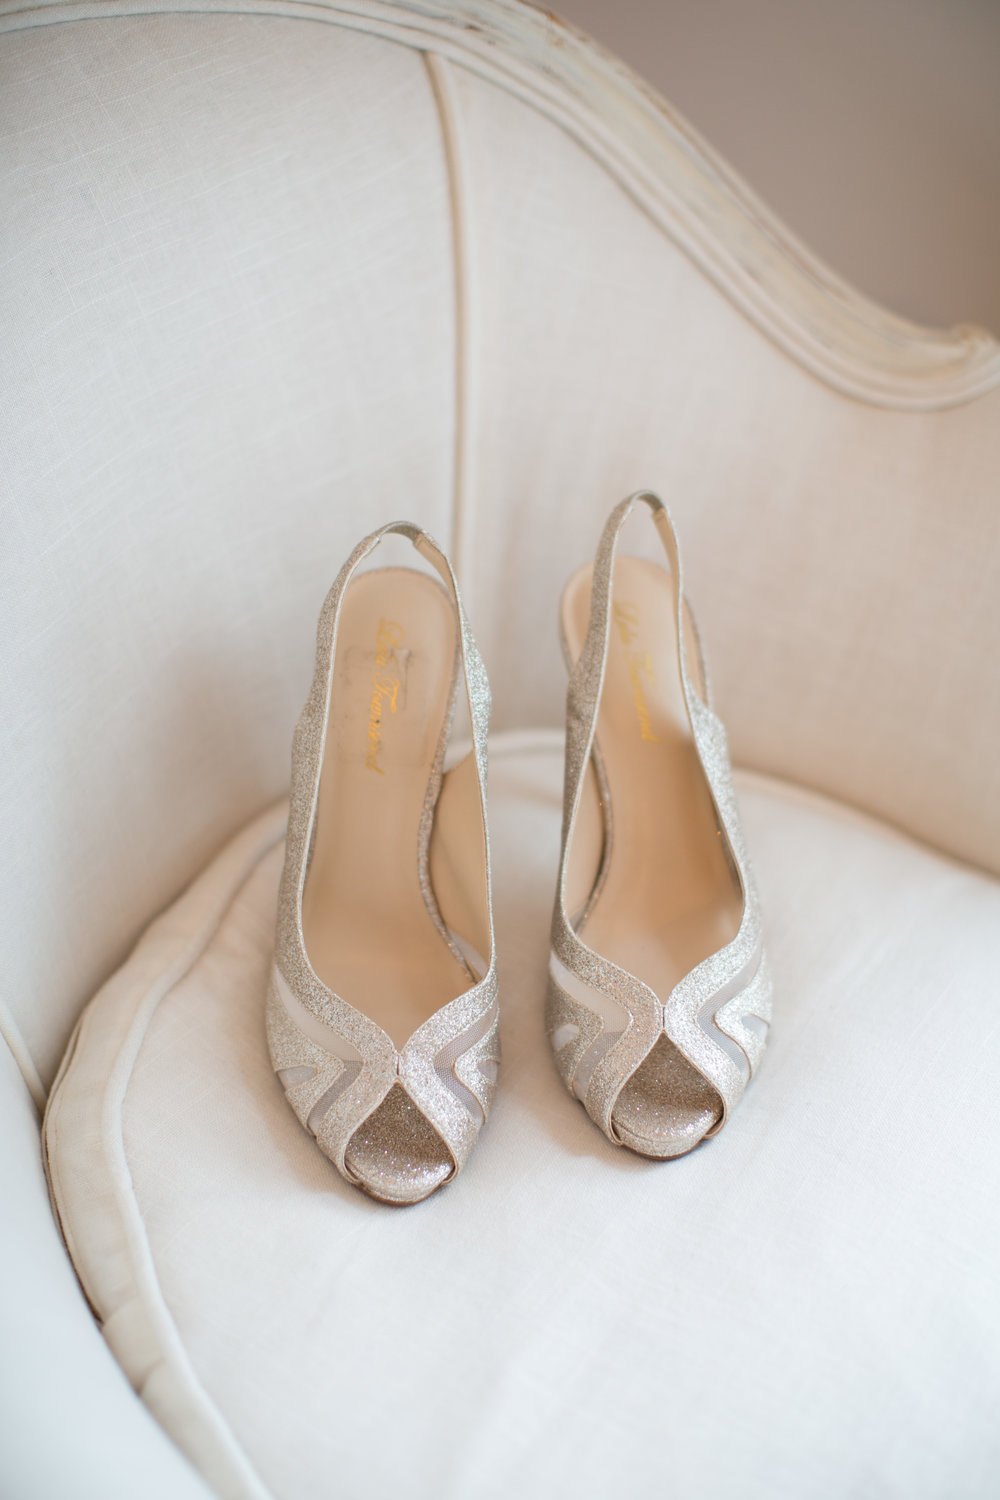 Raleigh nc wedding bridal shoes